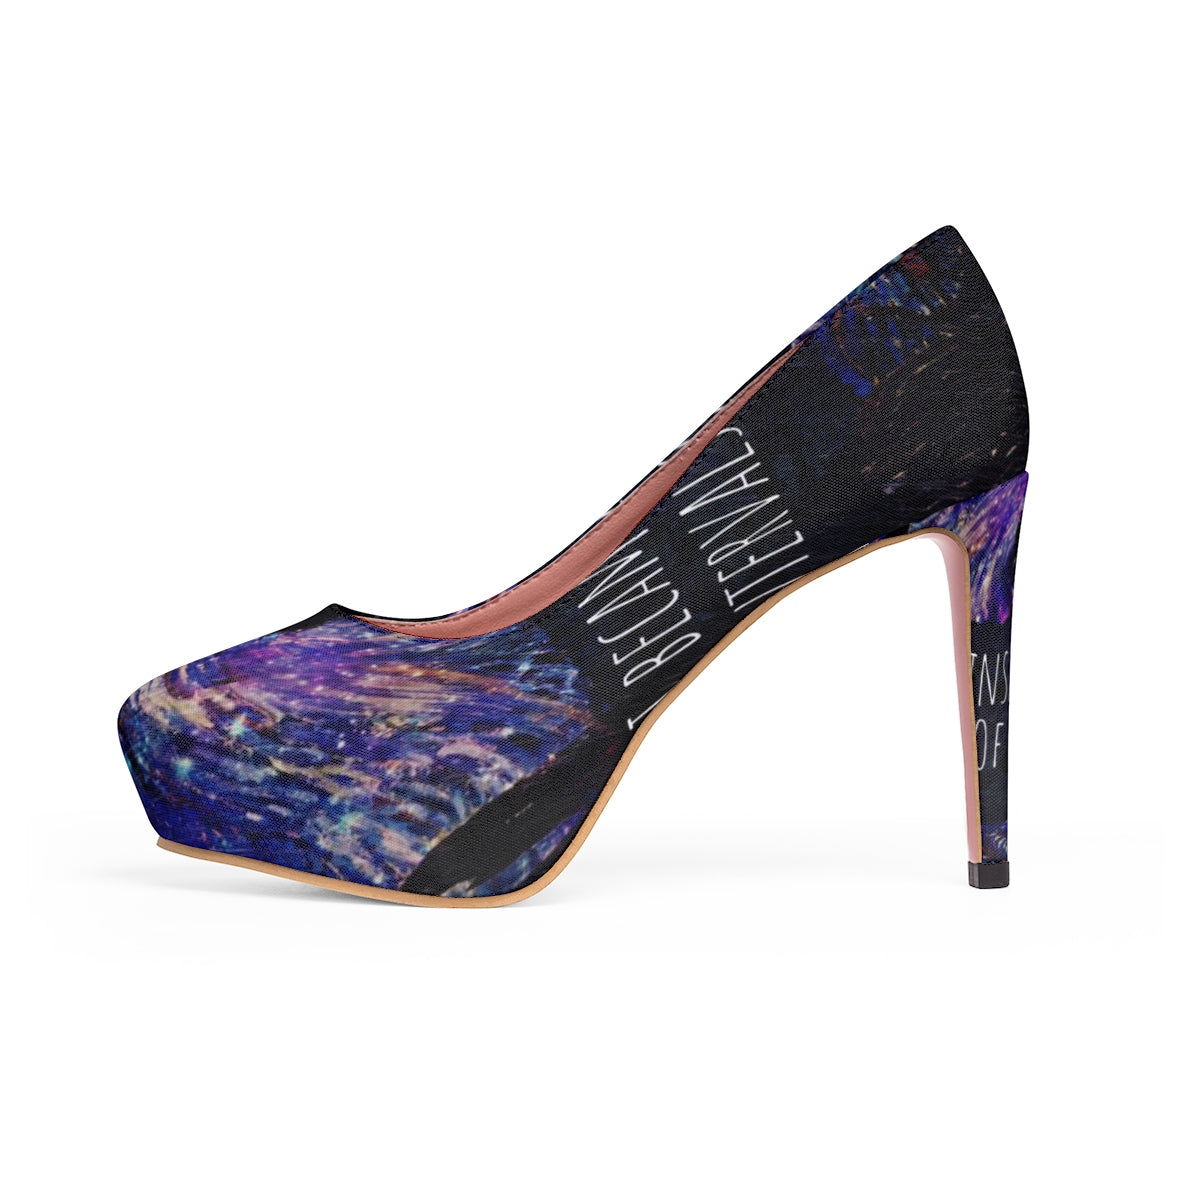 Insane Raven Stiletto Pumps-Starry Meadows